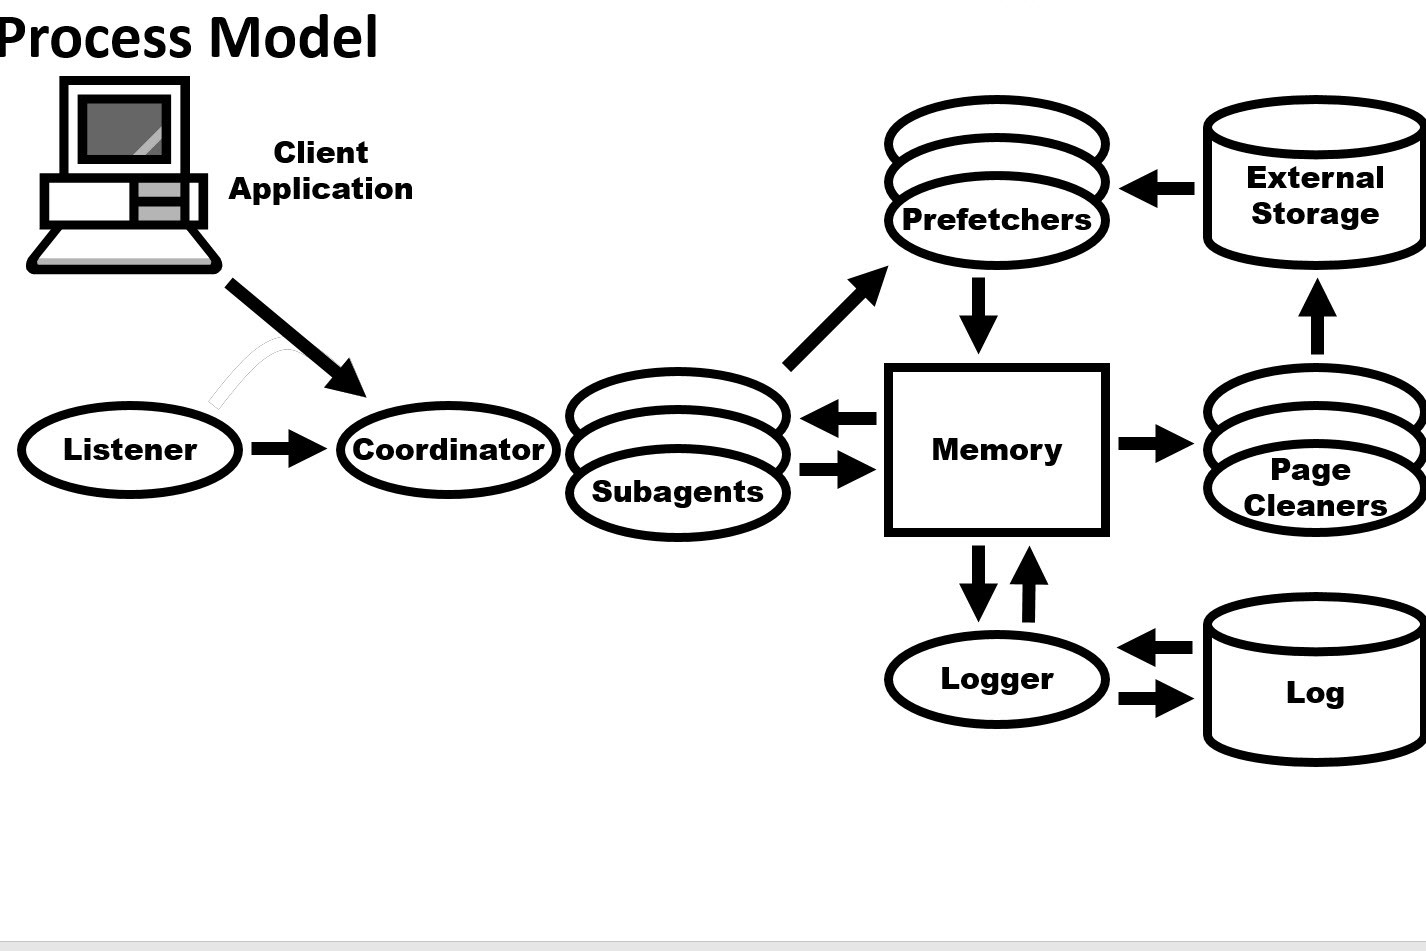 A diagram of the Db2 LUW Process Model showing major components that can help in database performance tuning efforts.